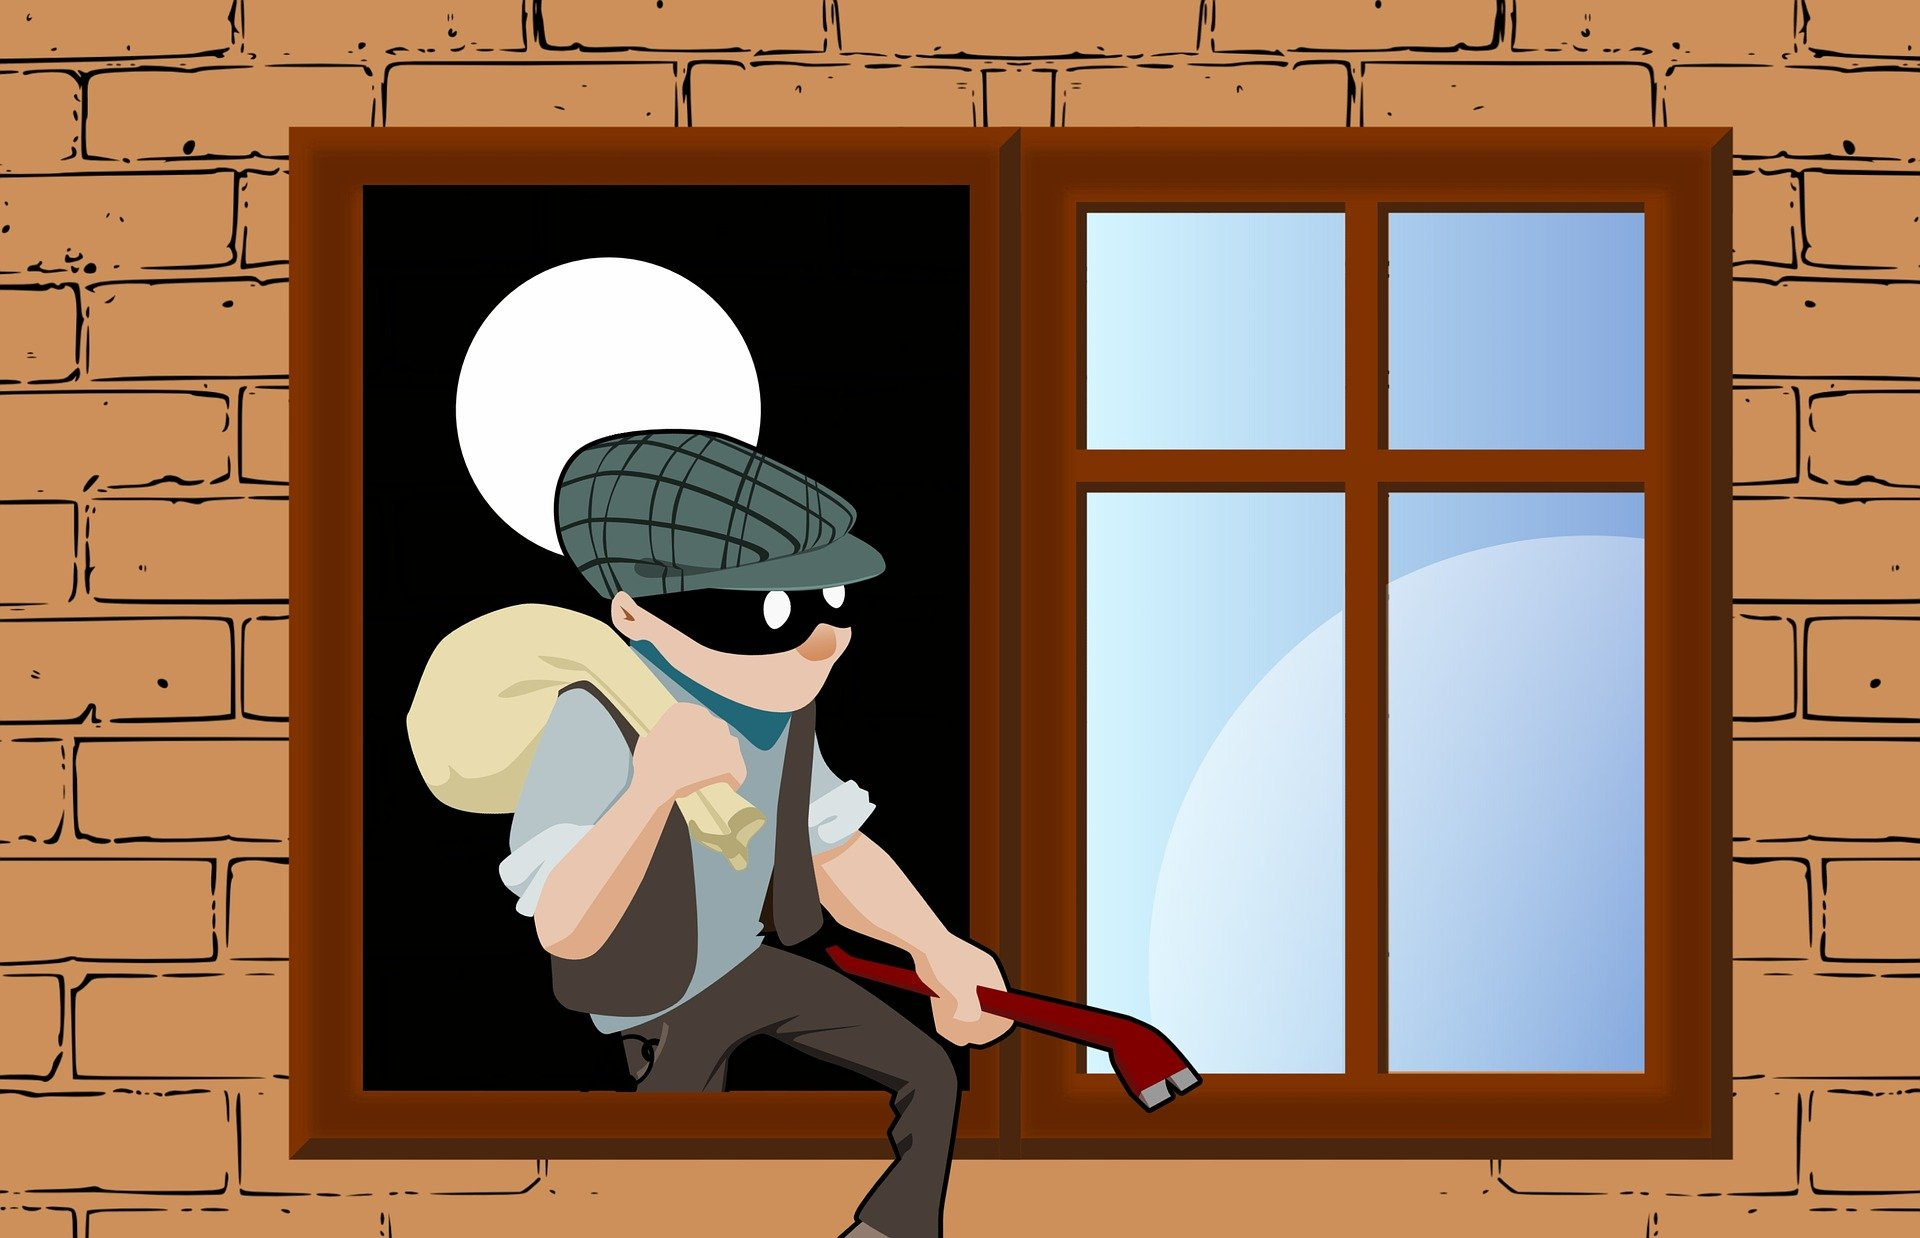 Thief climbing out of window